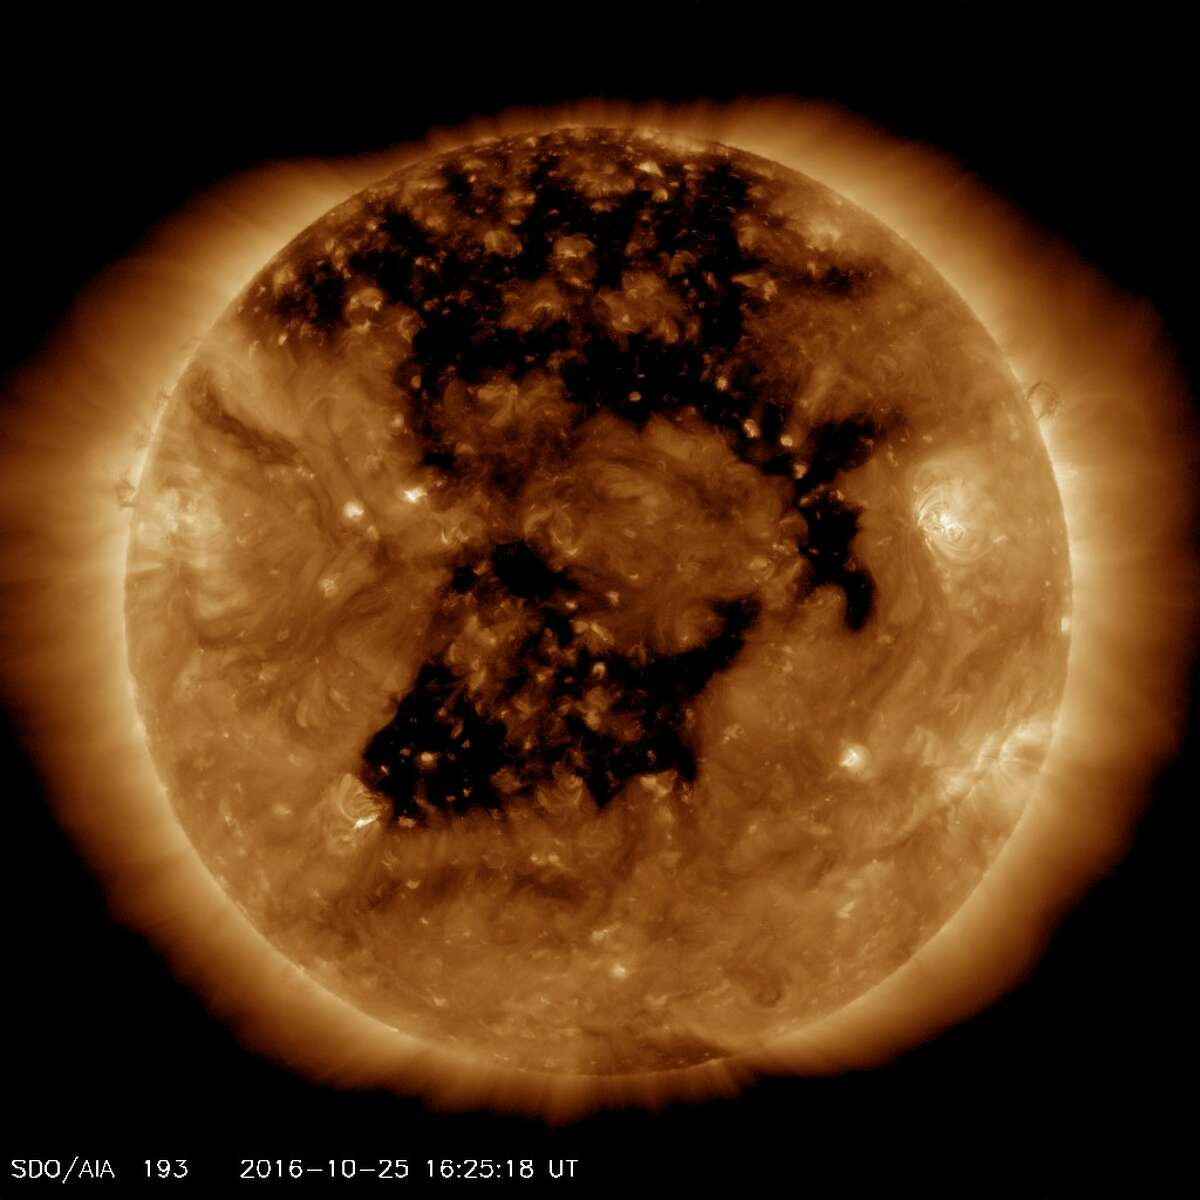 The sun as seen on Tuesday morning. The big black areas are coronal holes through which hot gasses escape the sun's surface and stream into space, sometimes hitting the Earth and causing stronger auroras and some electronic disturbances.